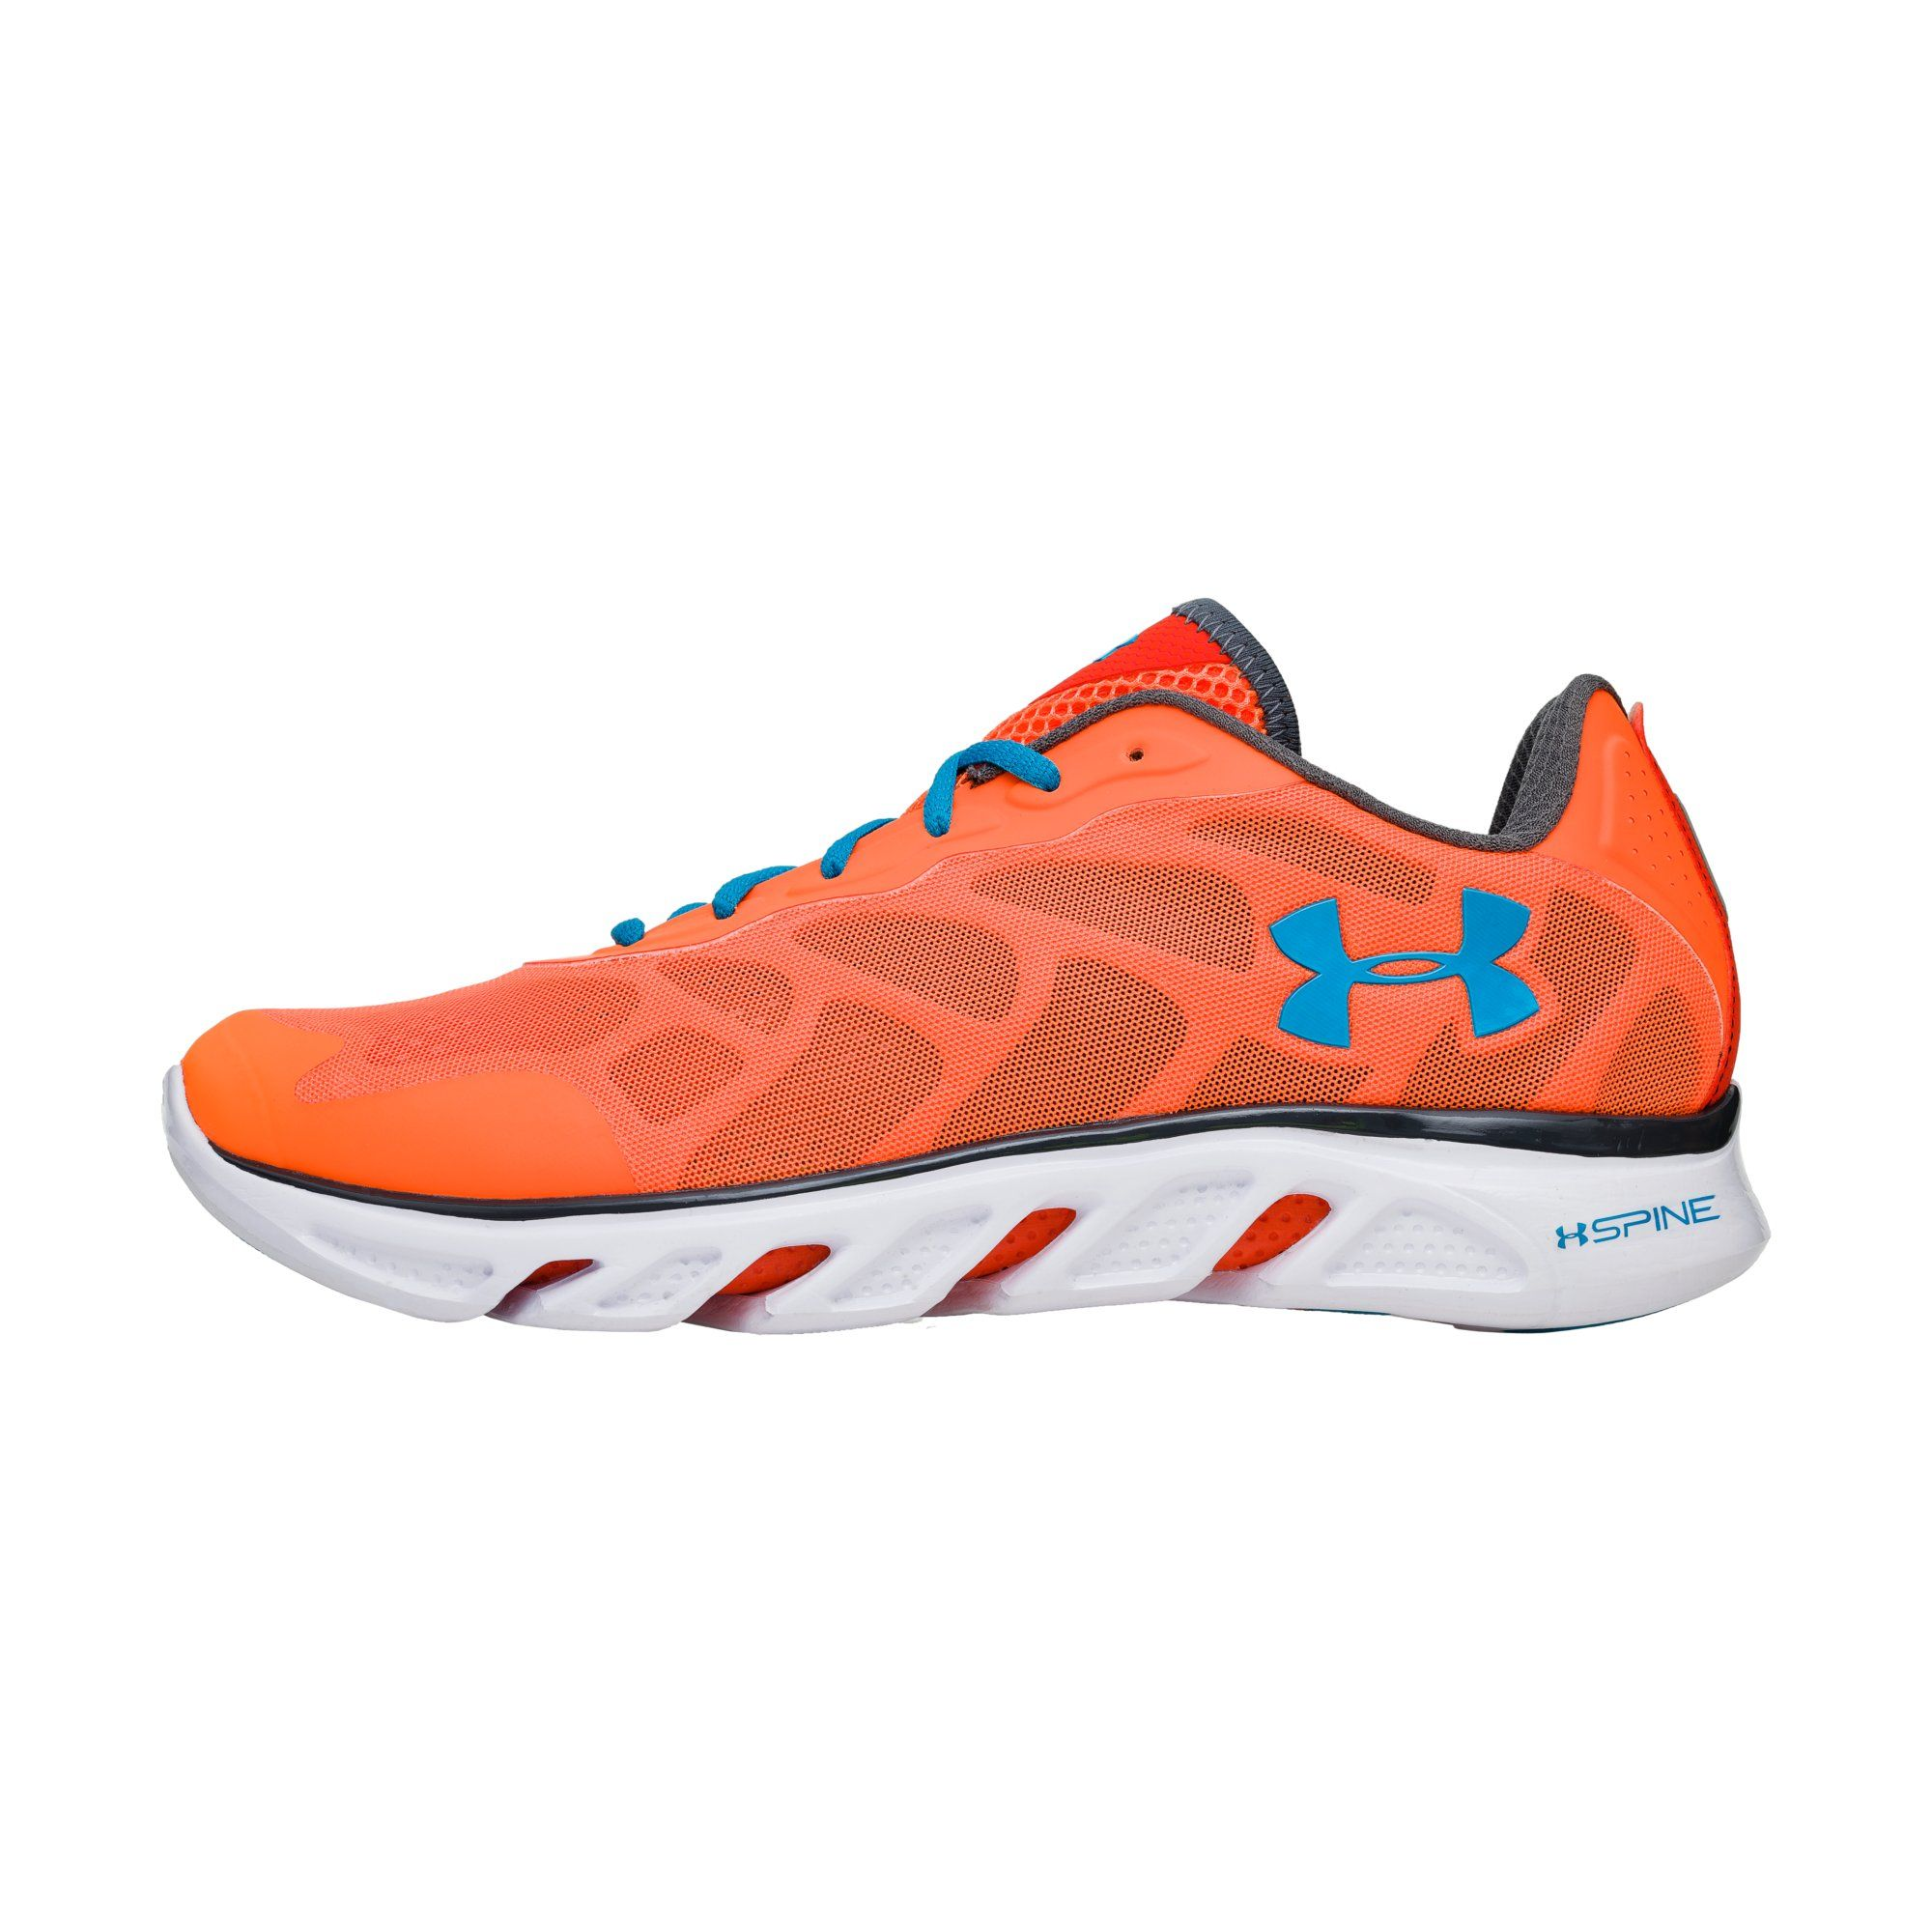 Under Armour Orange Running Shoes explore online fashion Style online AmUTcY